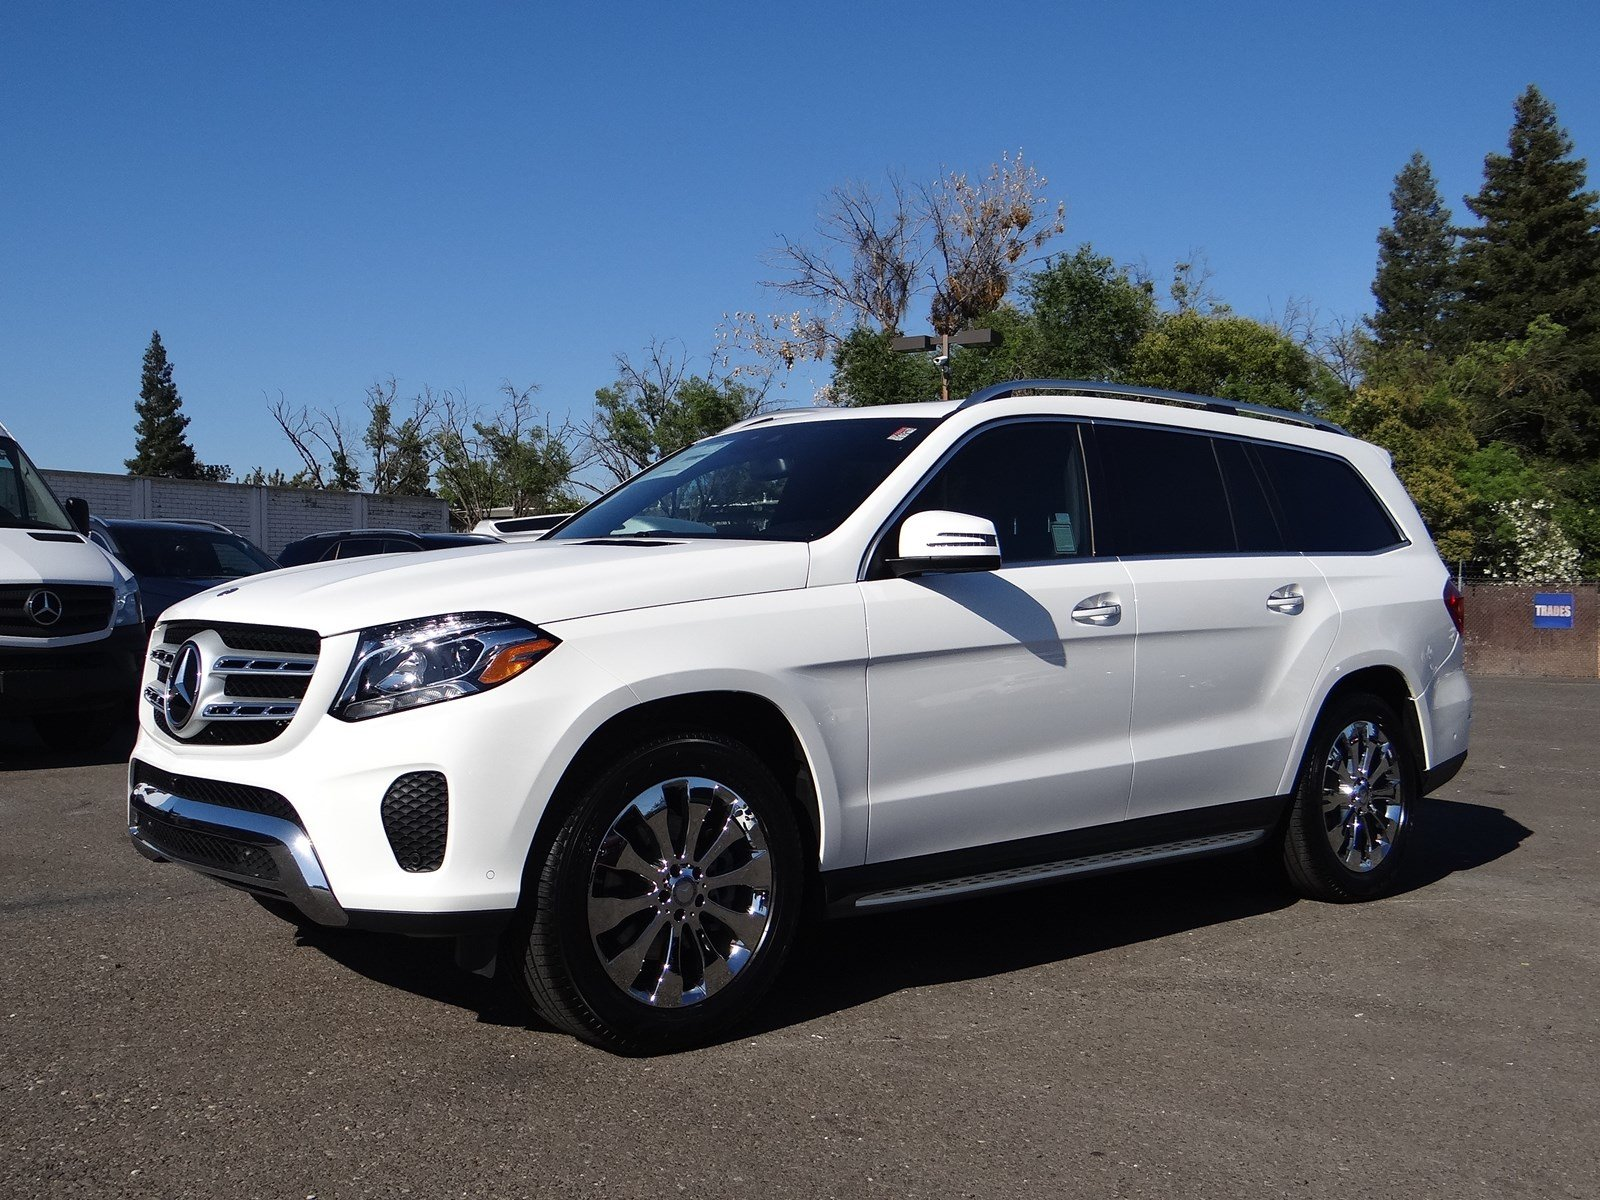 New 2017 mercedes benz gls gls 450 suv in sacramento for 2017 mercedes benz gls 450